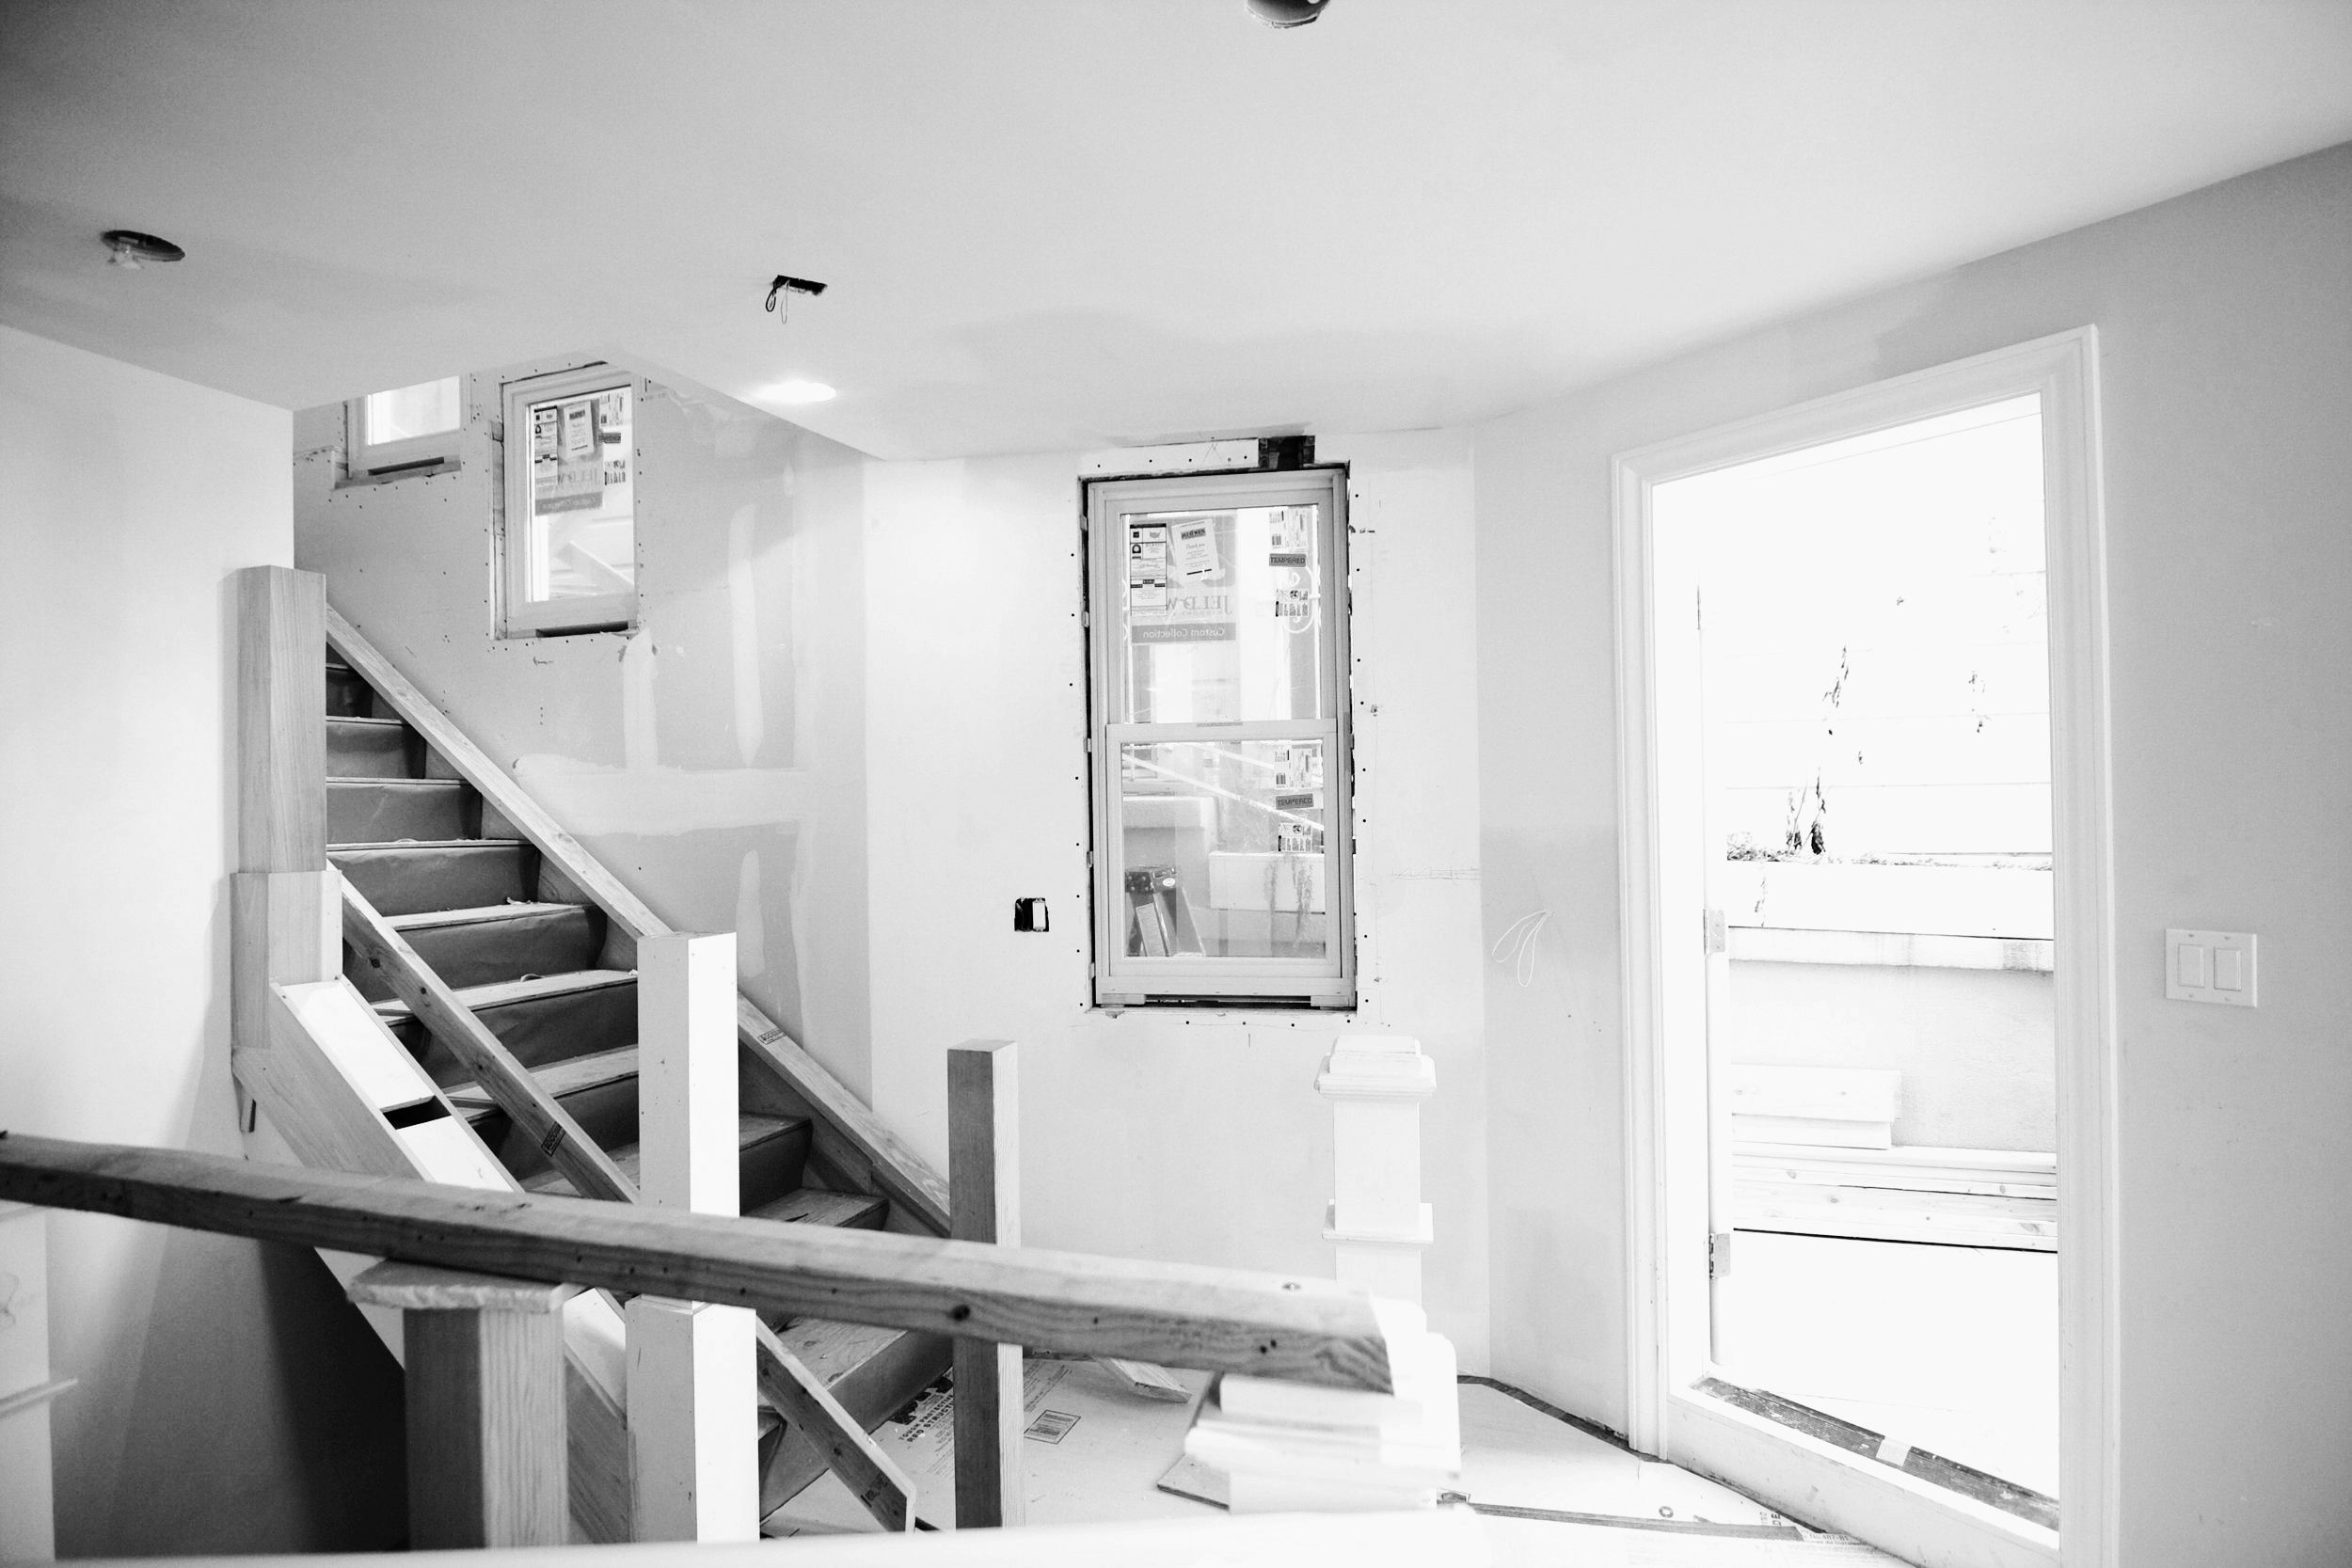 Before, one would have to go outside to access the basement. The new stairs to the lower level basement is now tucked behind the existing stair. By making this minor change, we enabled fluid movement throughout all levels of the home.